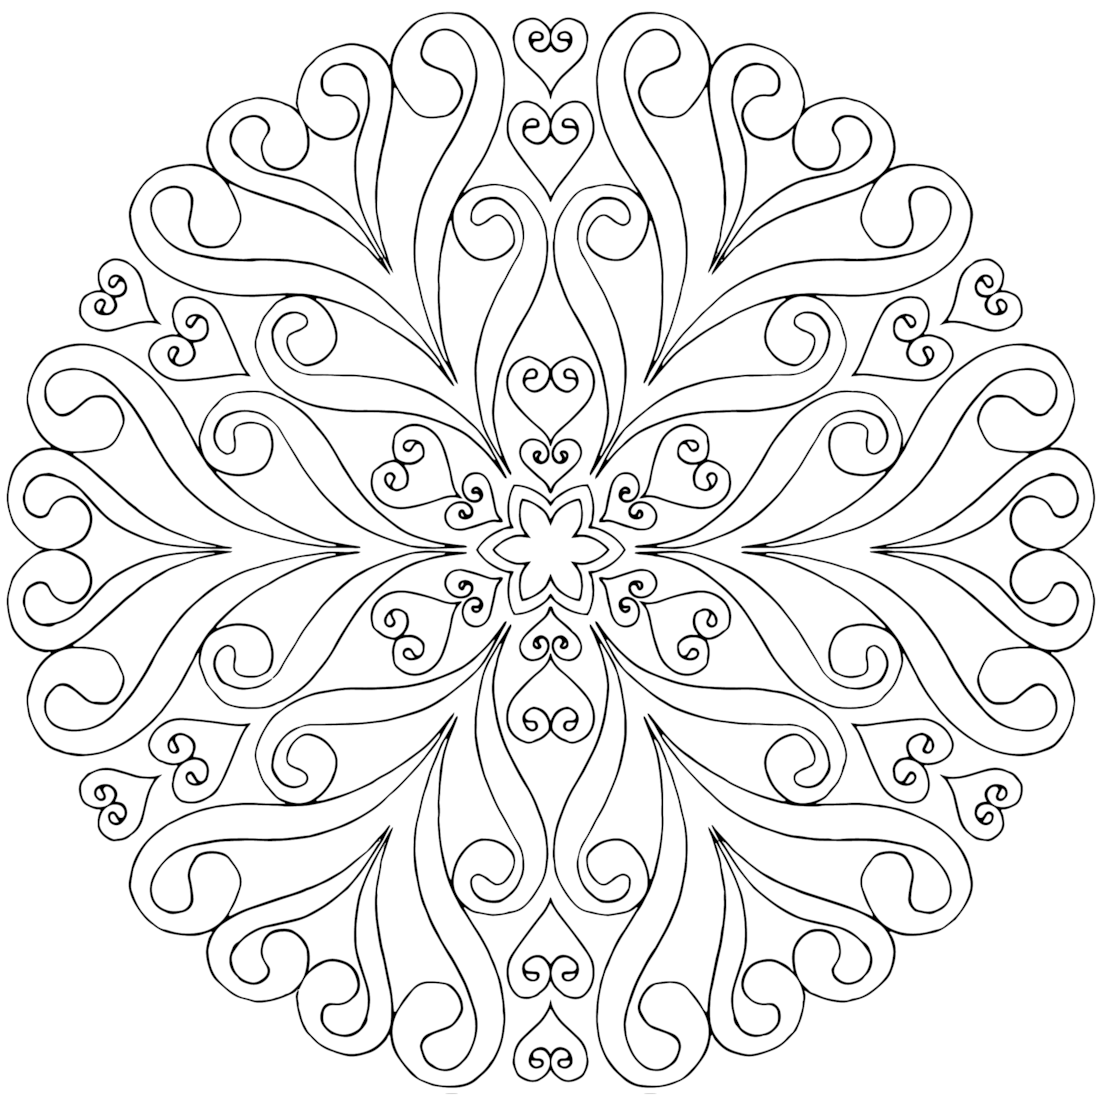 This Is Life In Bloom A Free Mandala Coloring Page For You To Print Color And Share Draw Mandala Coloring Mandala Coloring Books Mandala Coloring Pages